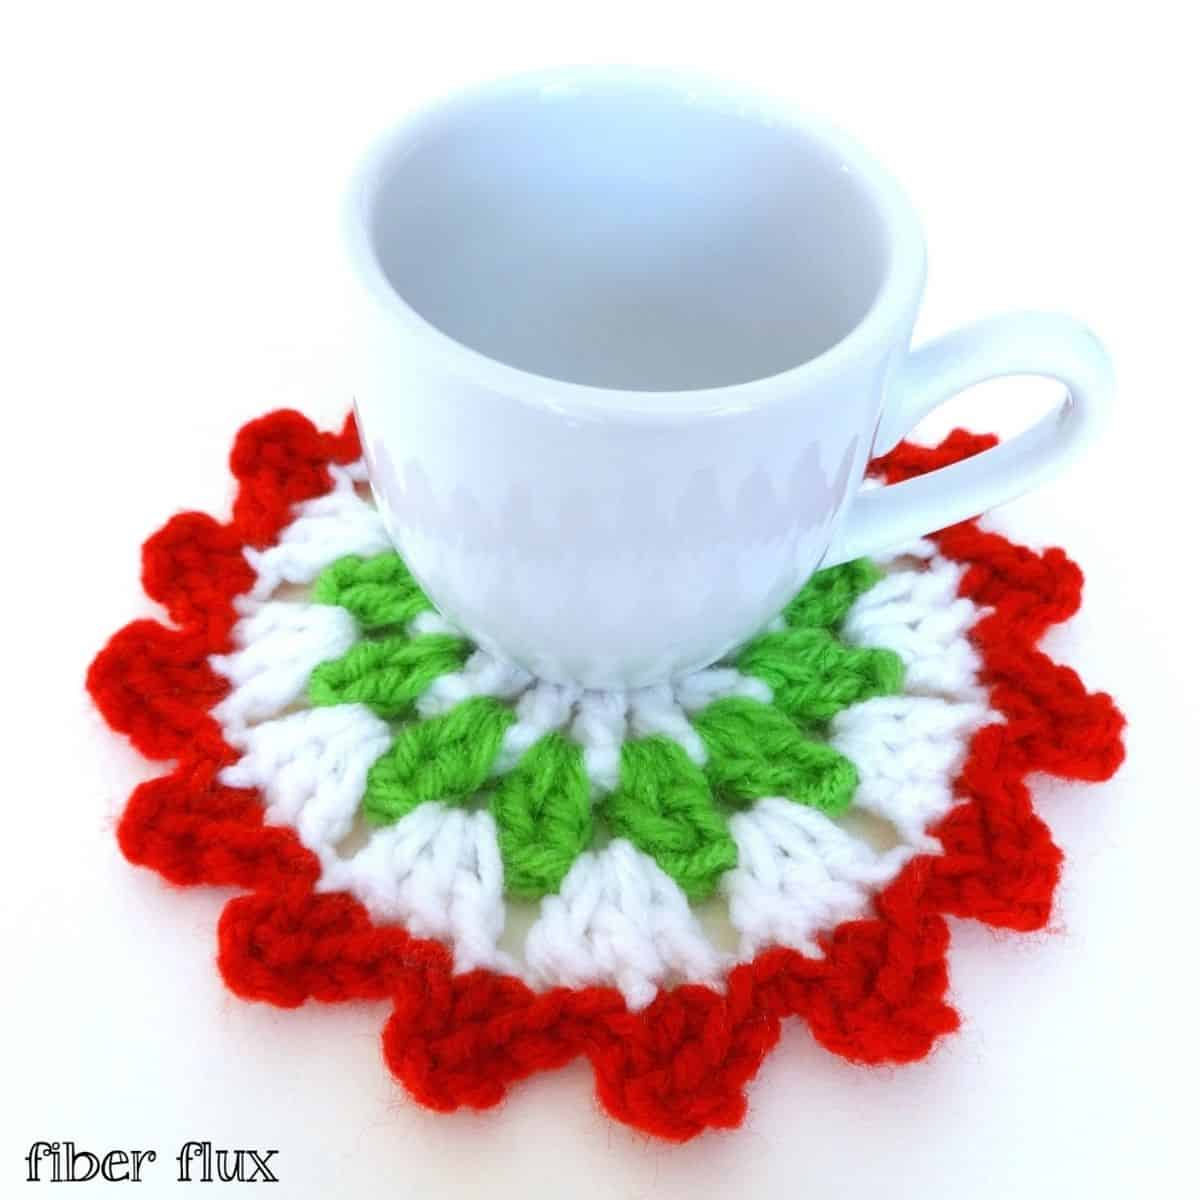 mug sitting on a white, green and red round crocheted coaster